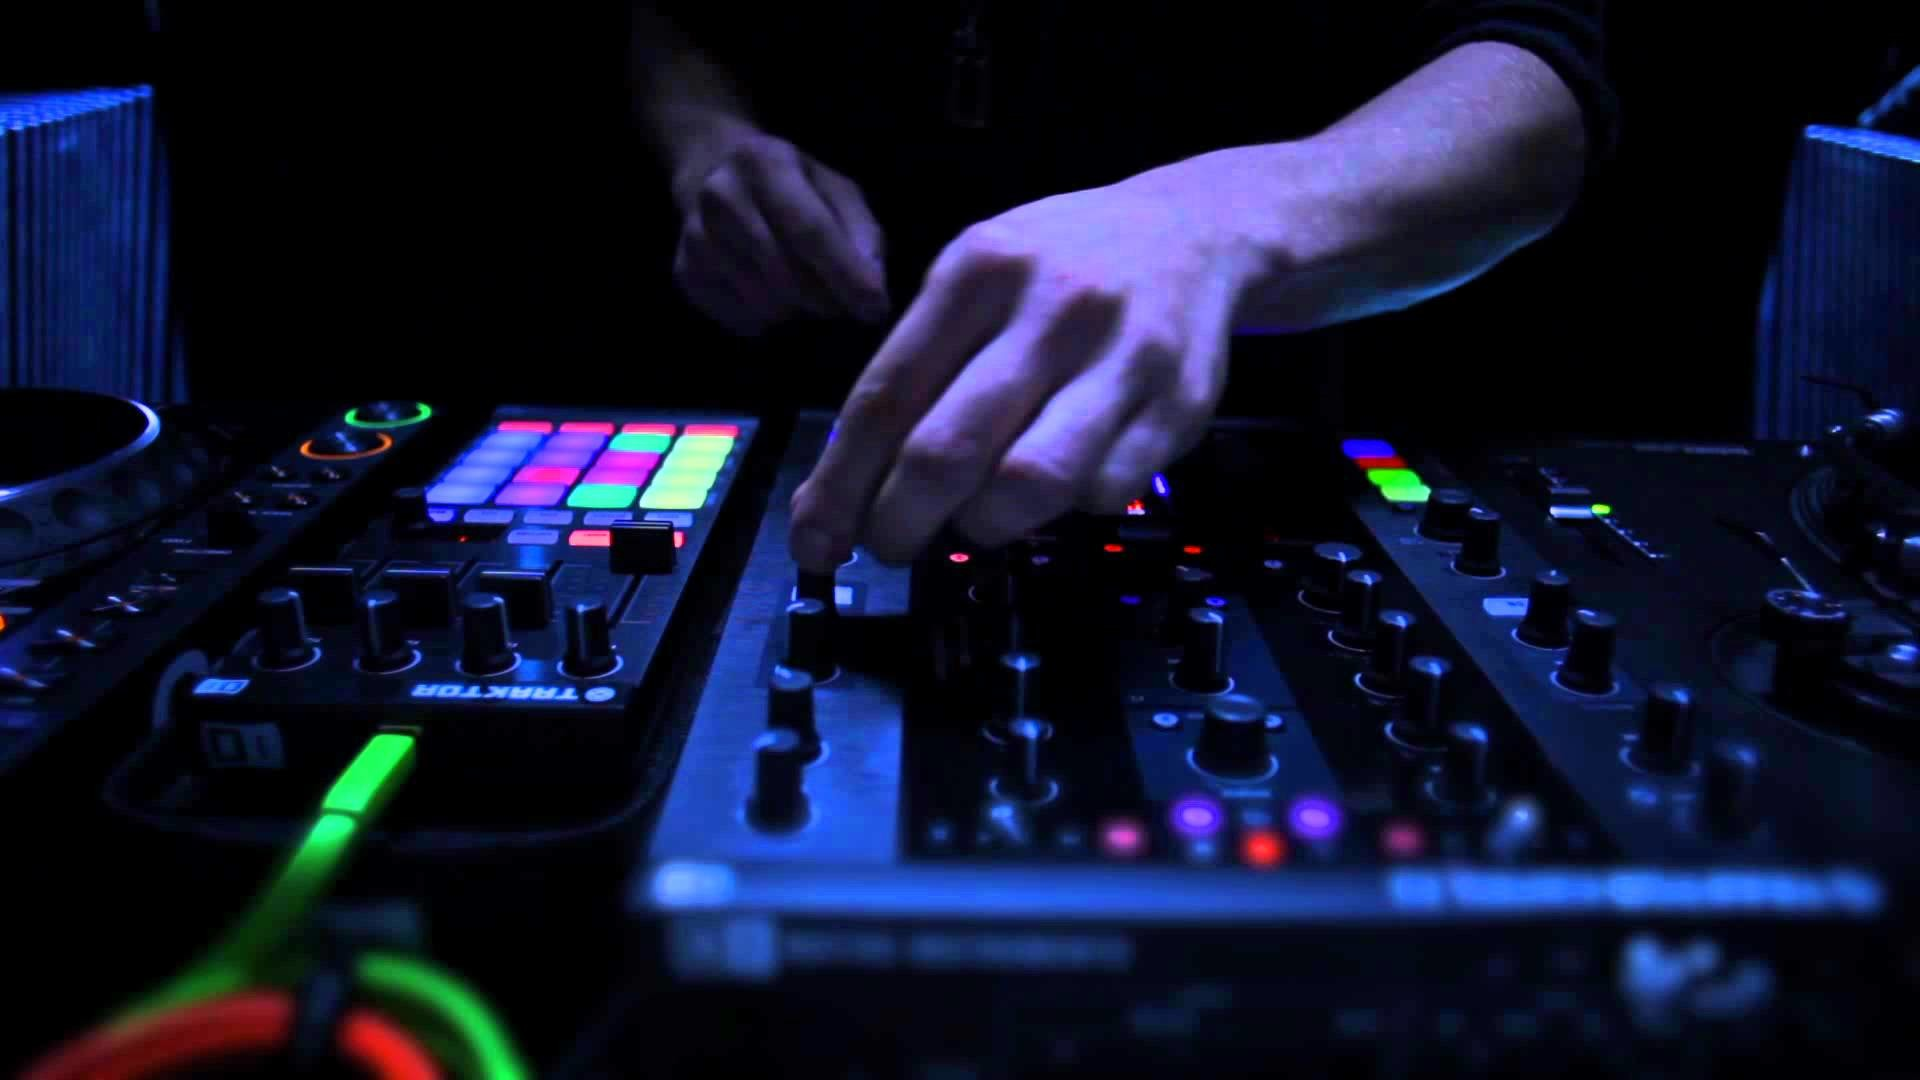 Traktor Wallpaper Hd 183 ①